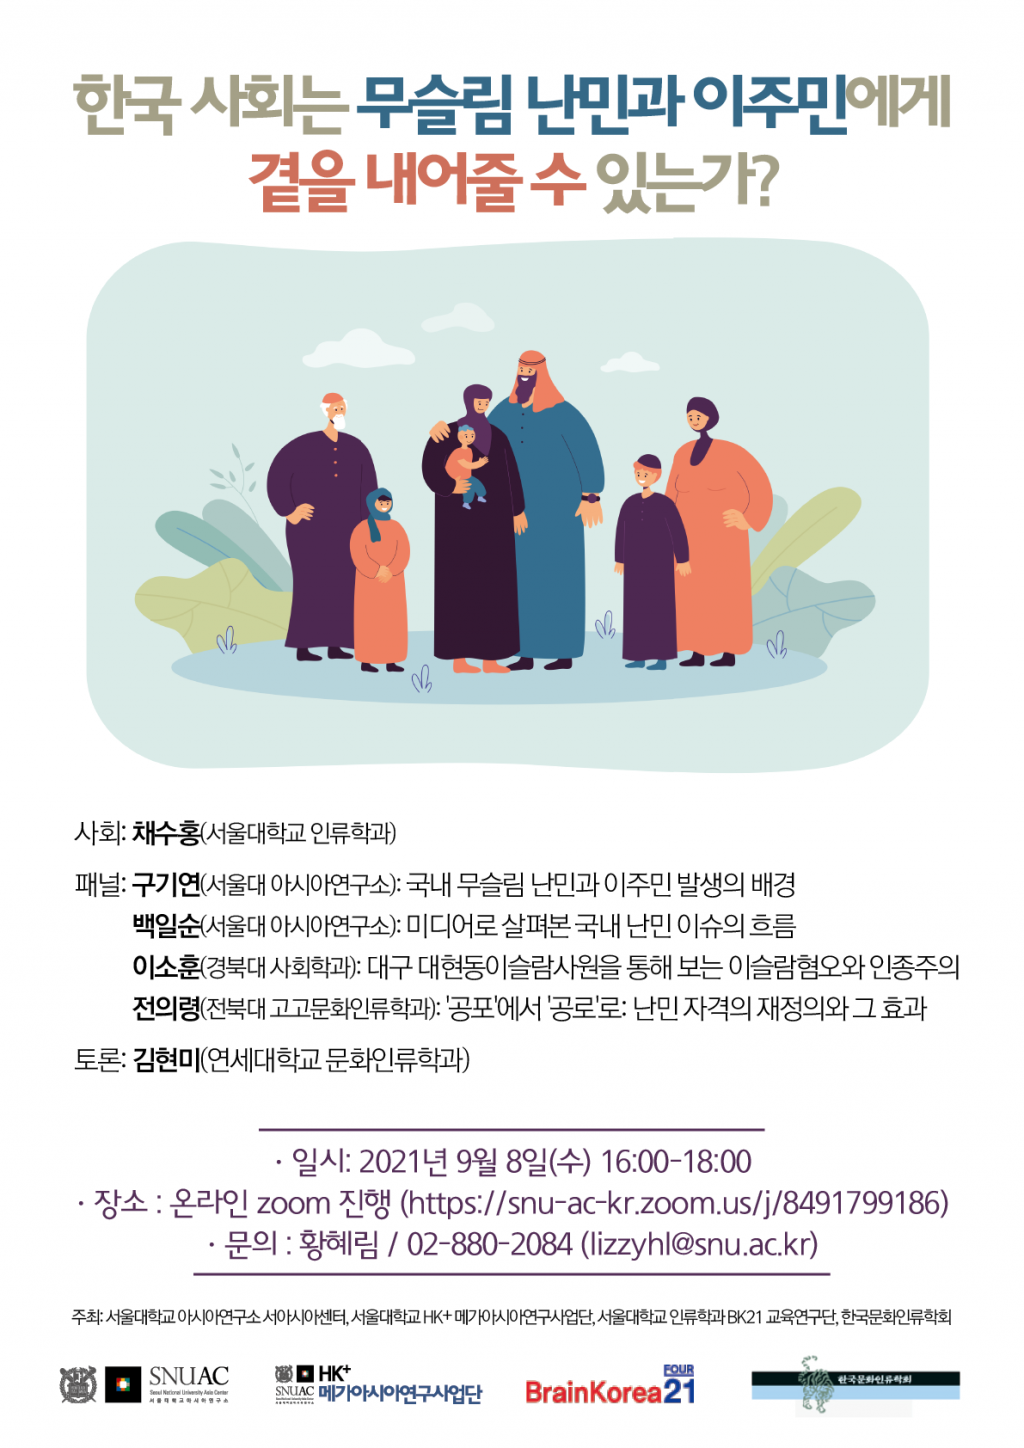 Can Korean Society Accommodate Muslim Refugees and Migrants?